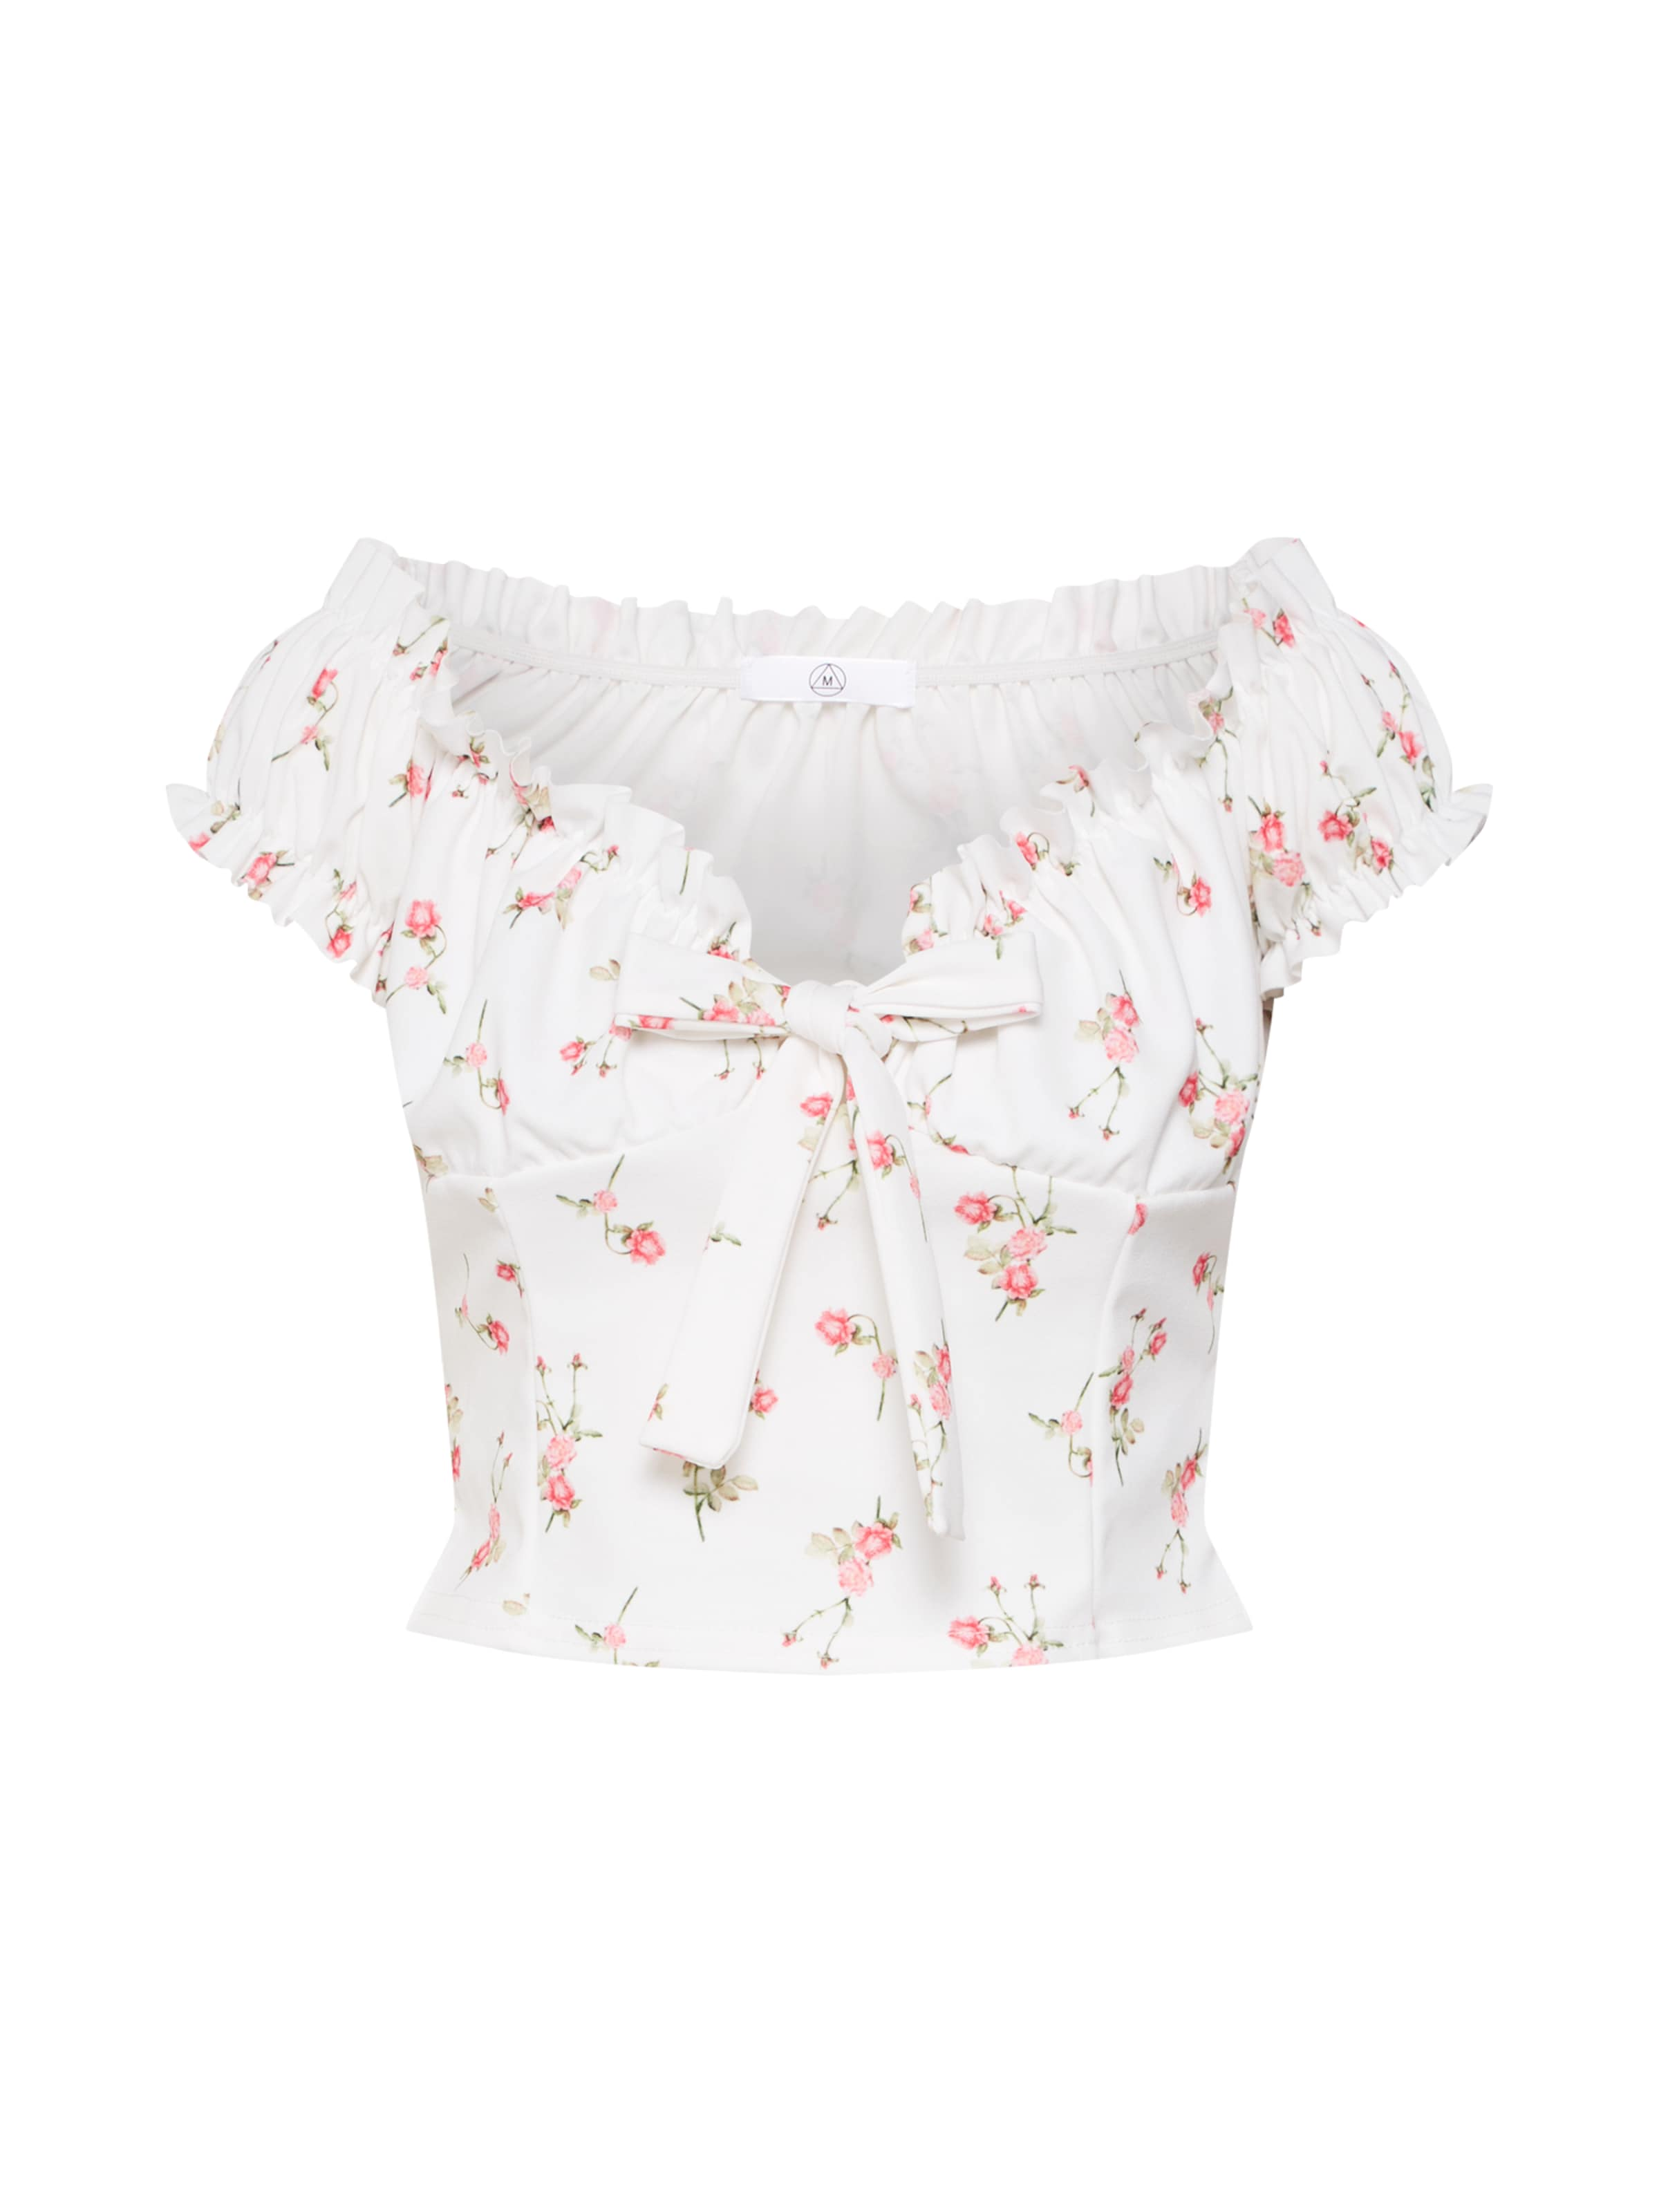 Missguided En Missguided T shirt RougeBlanc RougeBlanc T Missguided shirt En mv8n0ONwyP